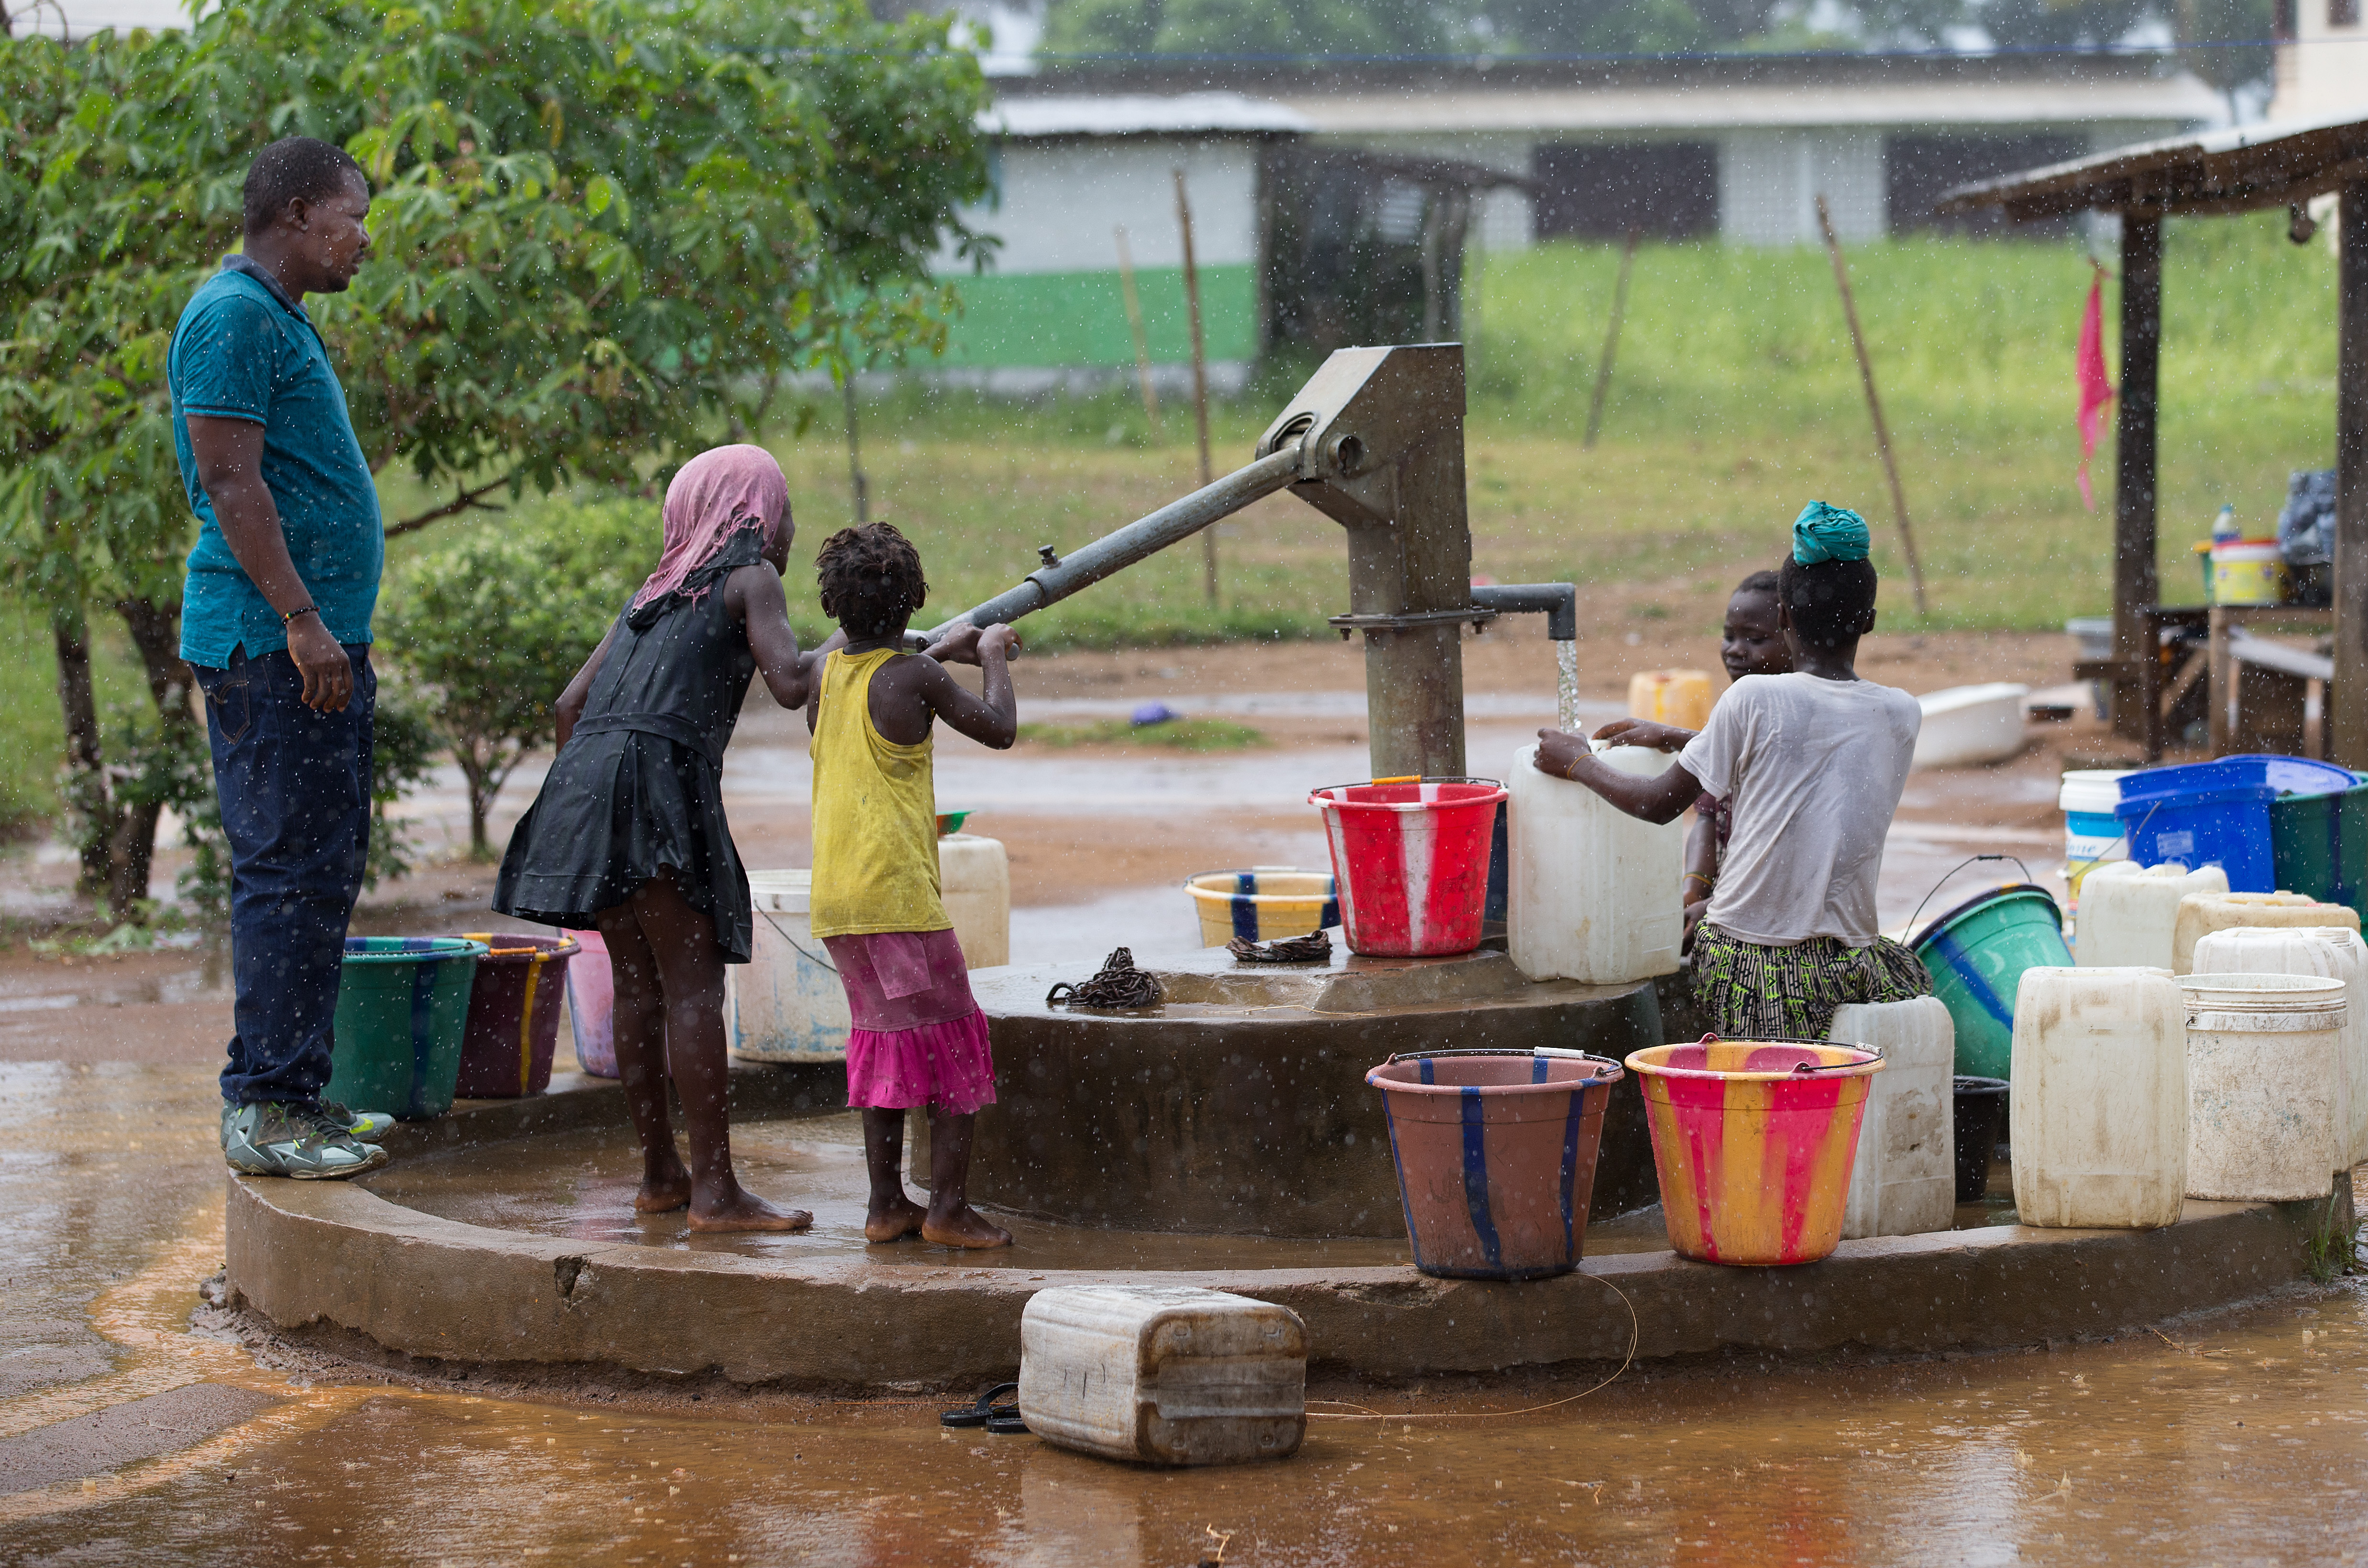 Jefferson B. Knight (left) checks on the output of a water well during the rainy season in Robert's Town Village near Marshall City, Liberia. Knight is director of the Peace With Justice Program for the United Methodist Liberia Conference. Photo by Mike DuBose, UMNS.